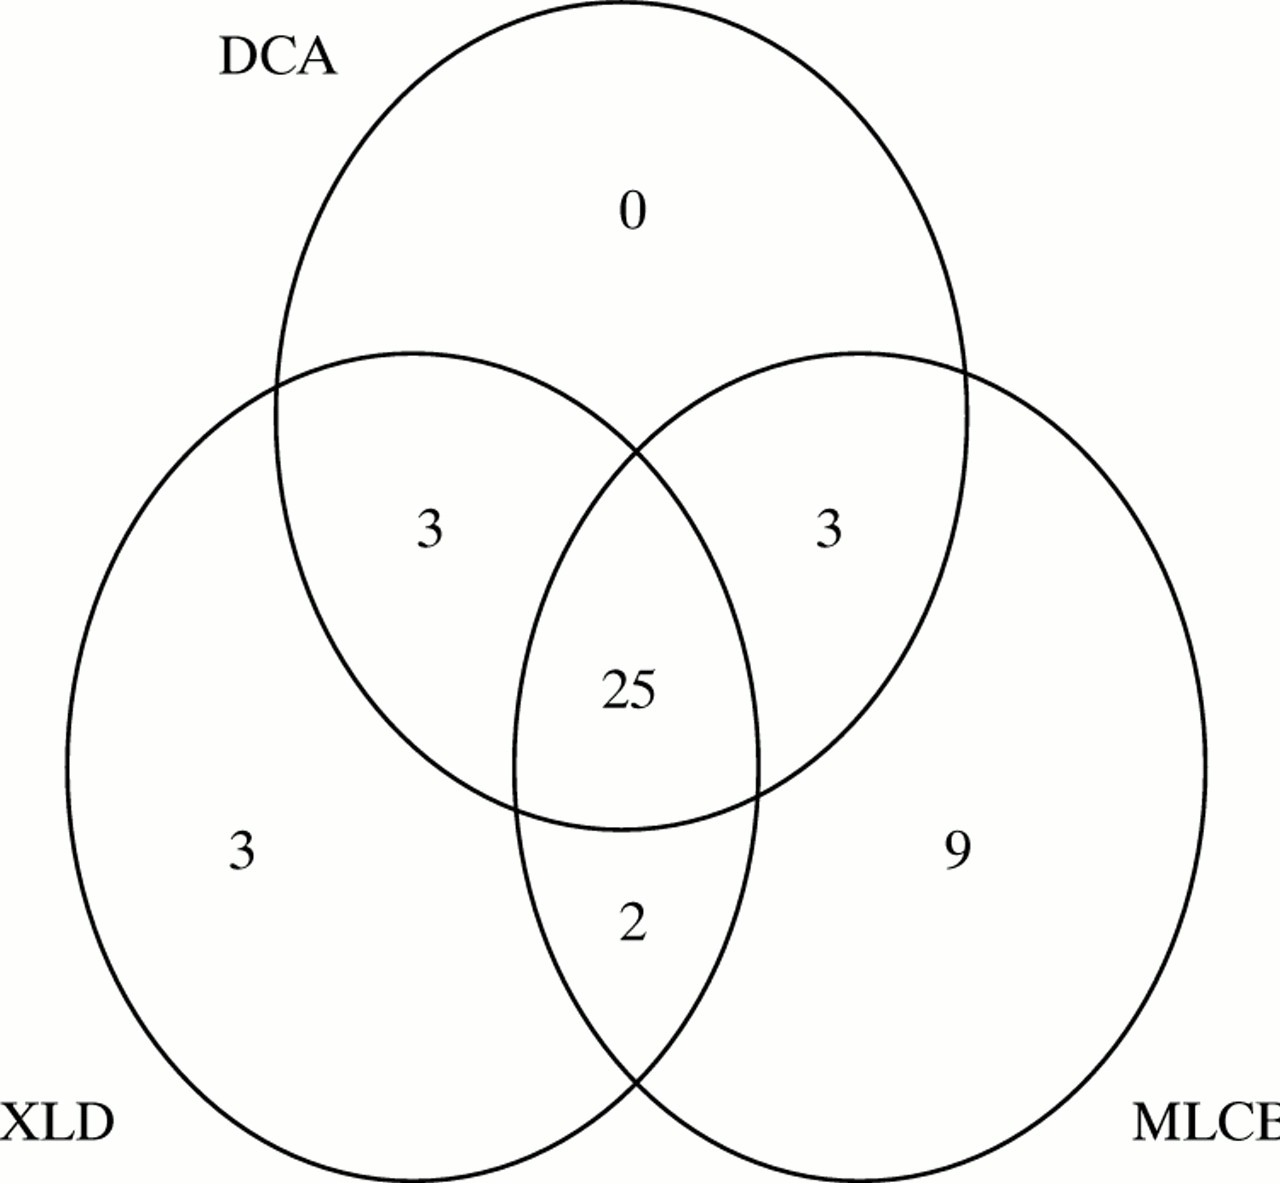 An Evaluation Of The Performance Of Xld Dca Mlcb And